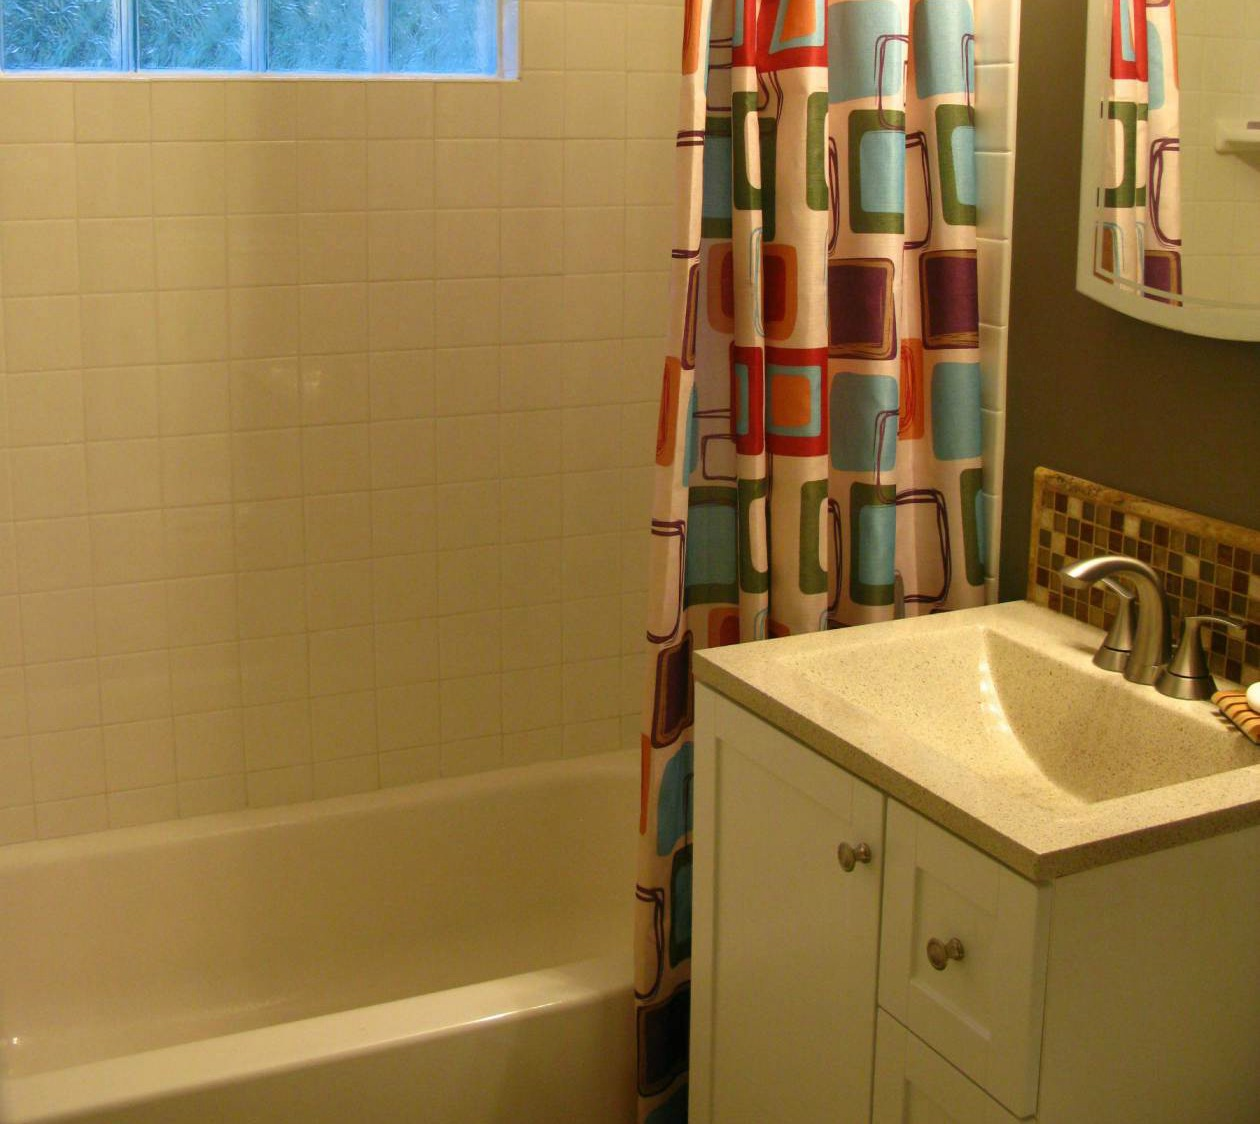 How To Start A Bathroom Remodel Bathroom Remodel From Start To Finish